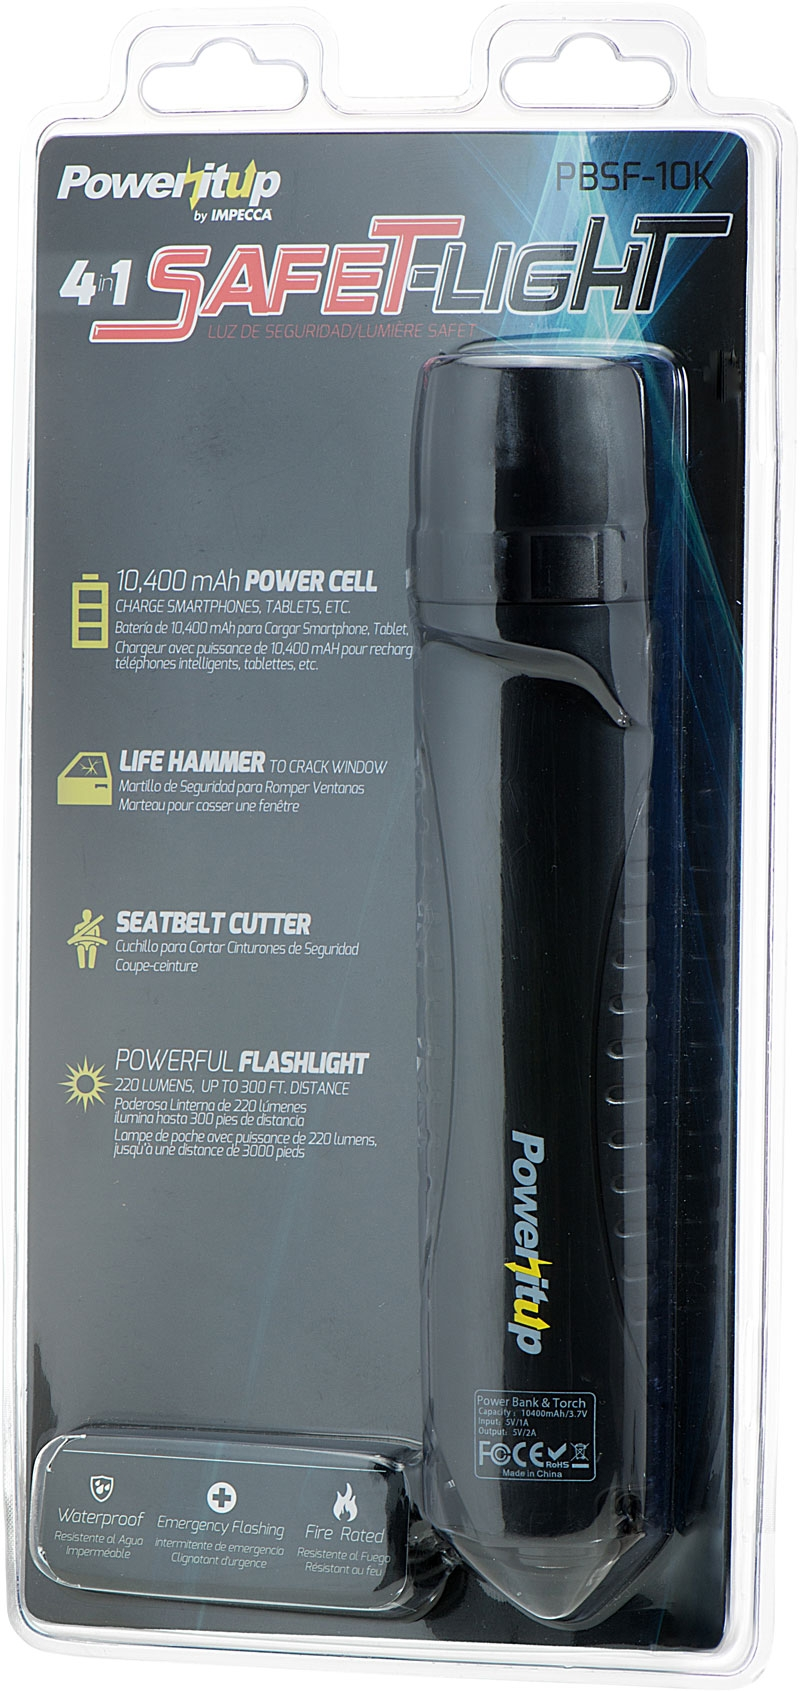 Poweritup 4 in 1 SafeT-Light